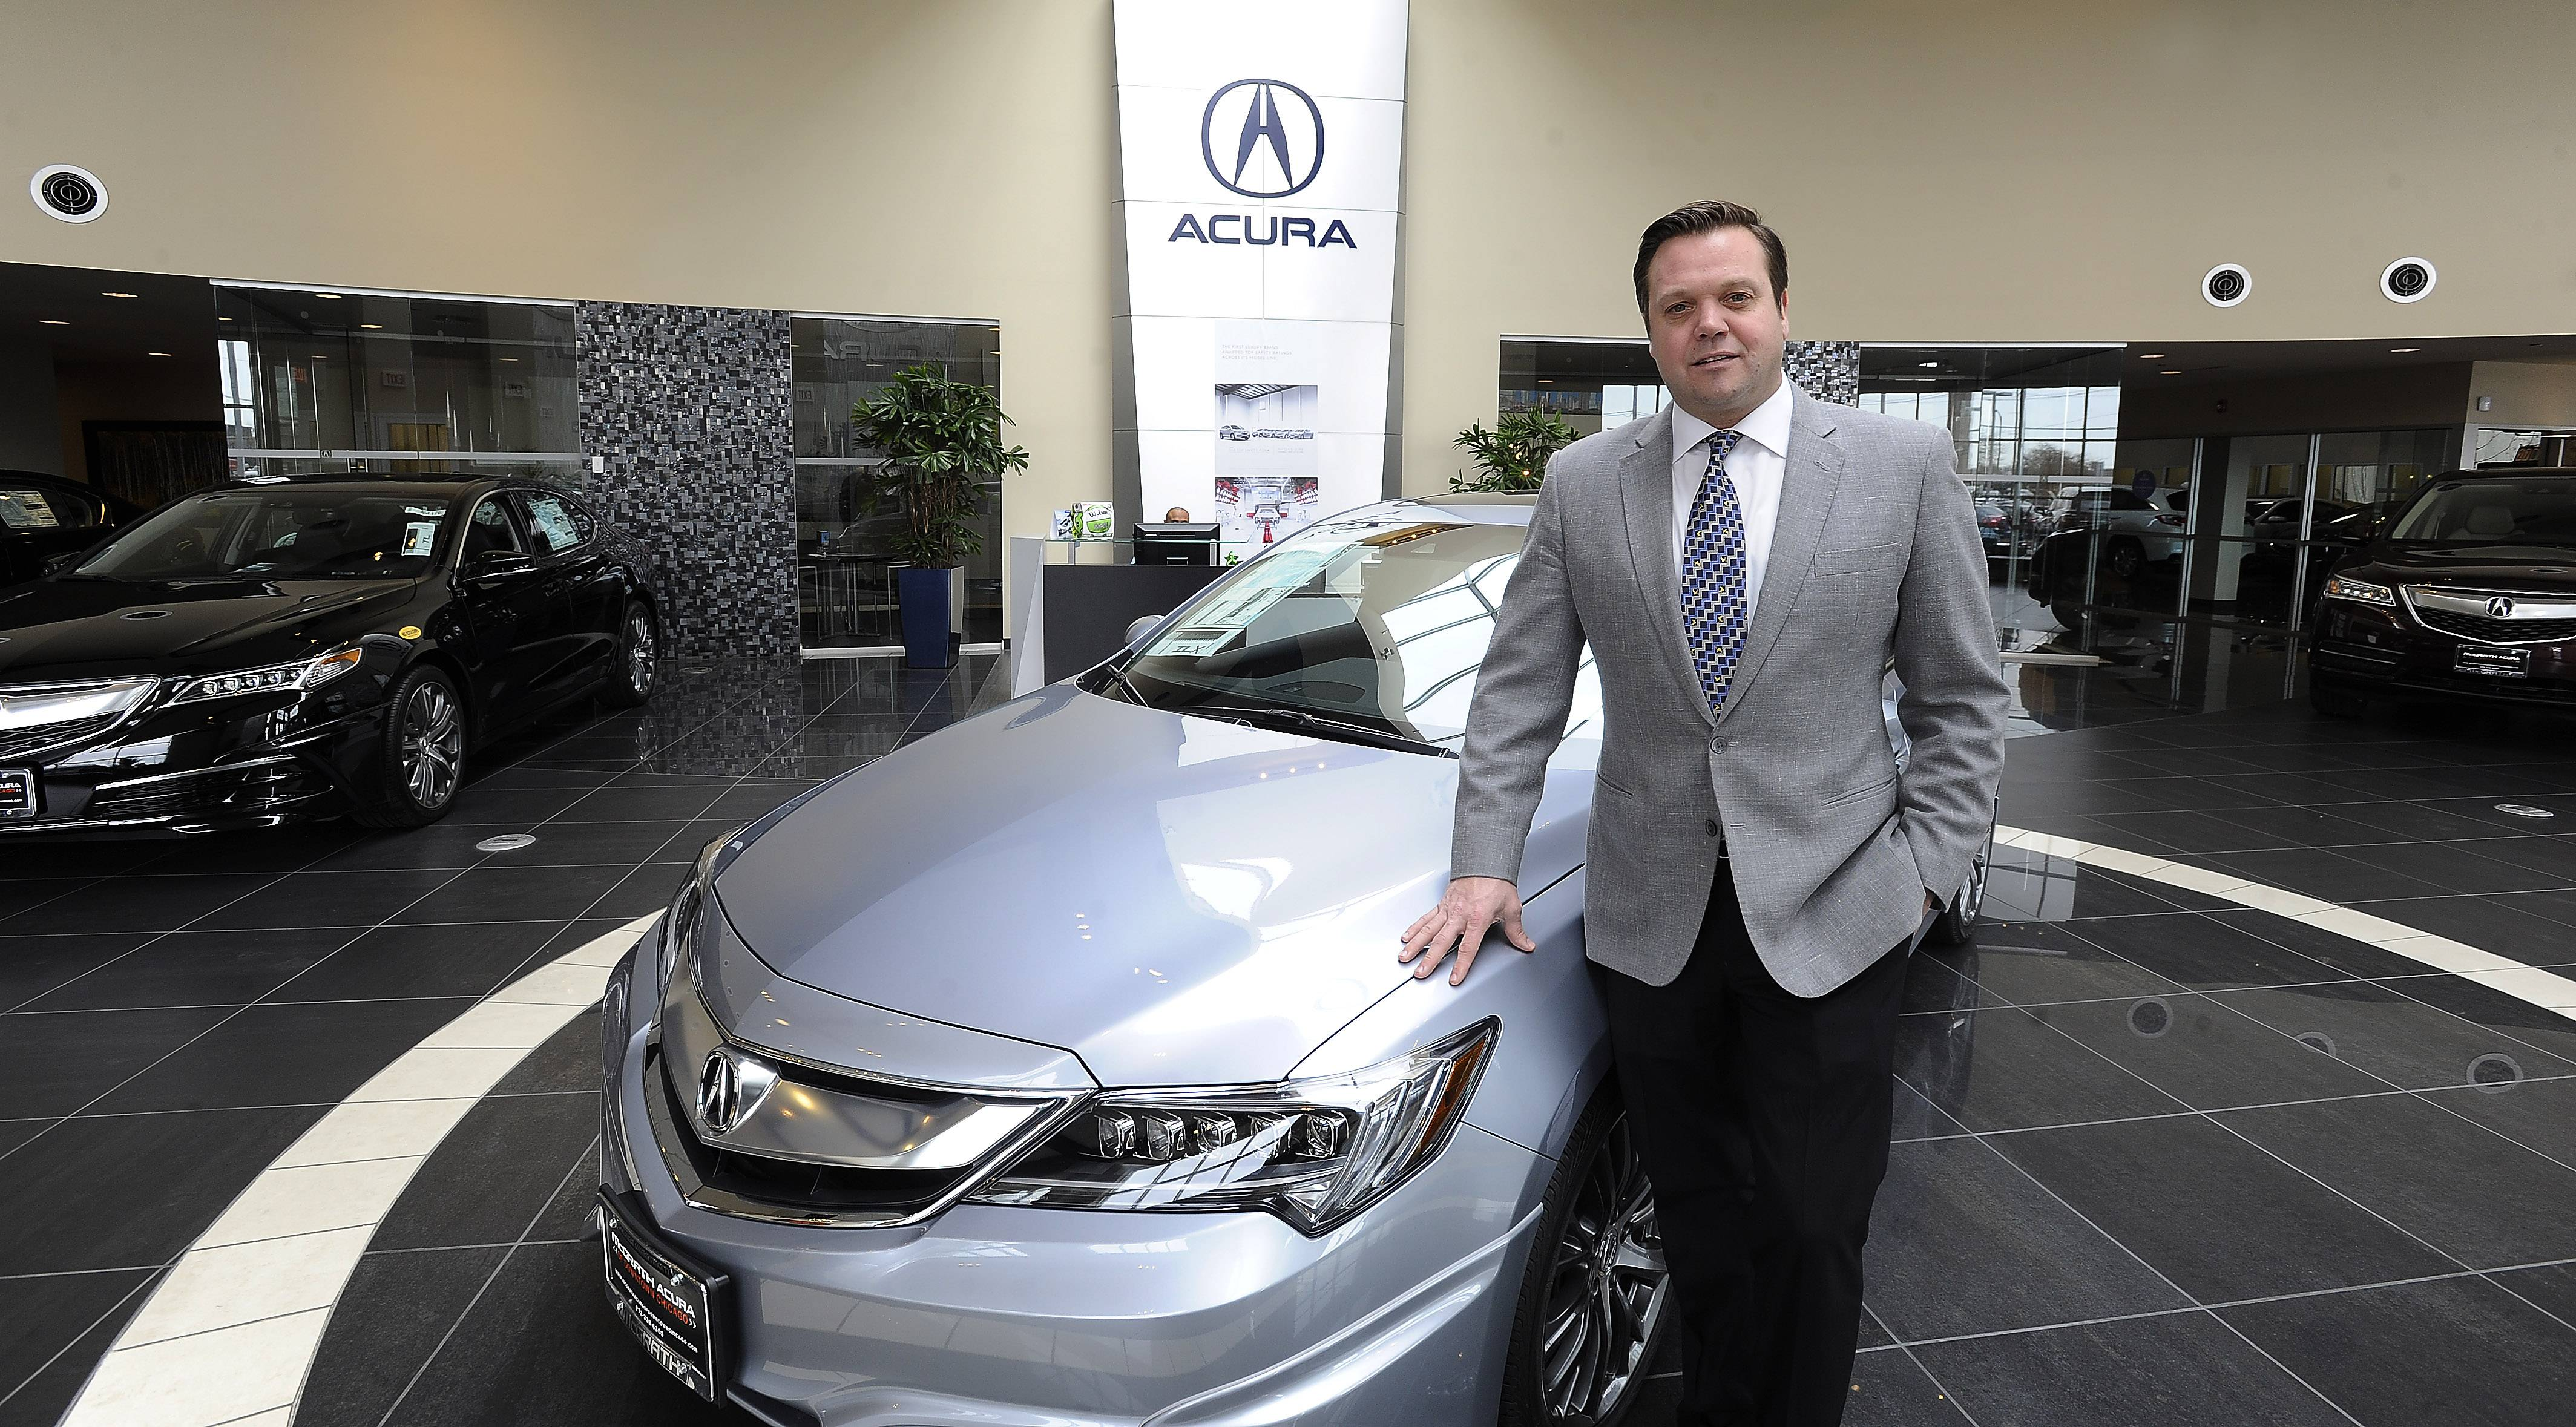 Kevin McGrath of McGrath Acura of Downtown Chicago began selling cars for his father, Mike McGrath Sr., at the age of 17. in recent years, he spearheaded efforts to open an Acura dealership in Chicago.